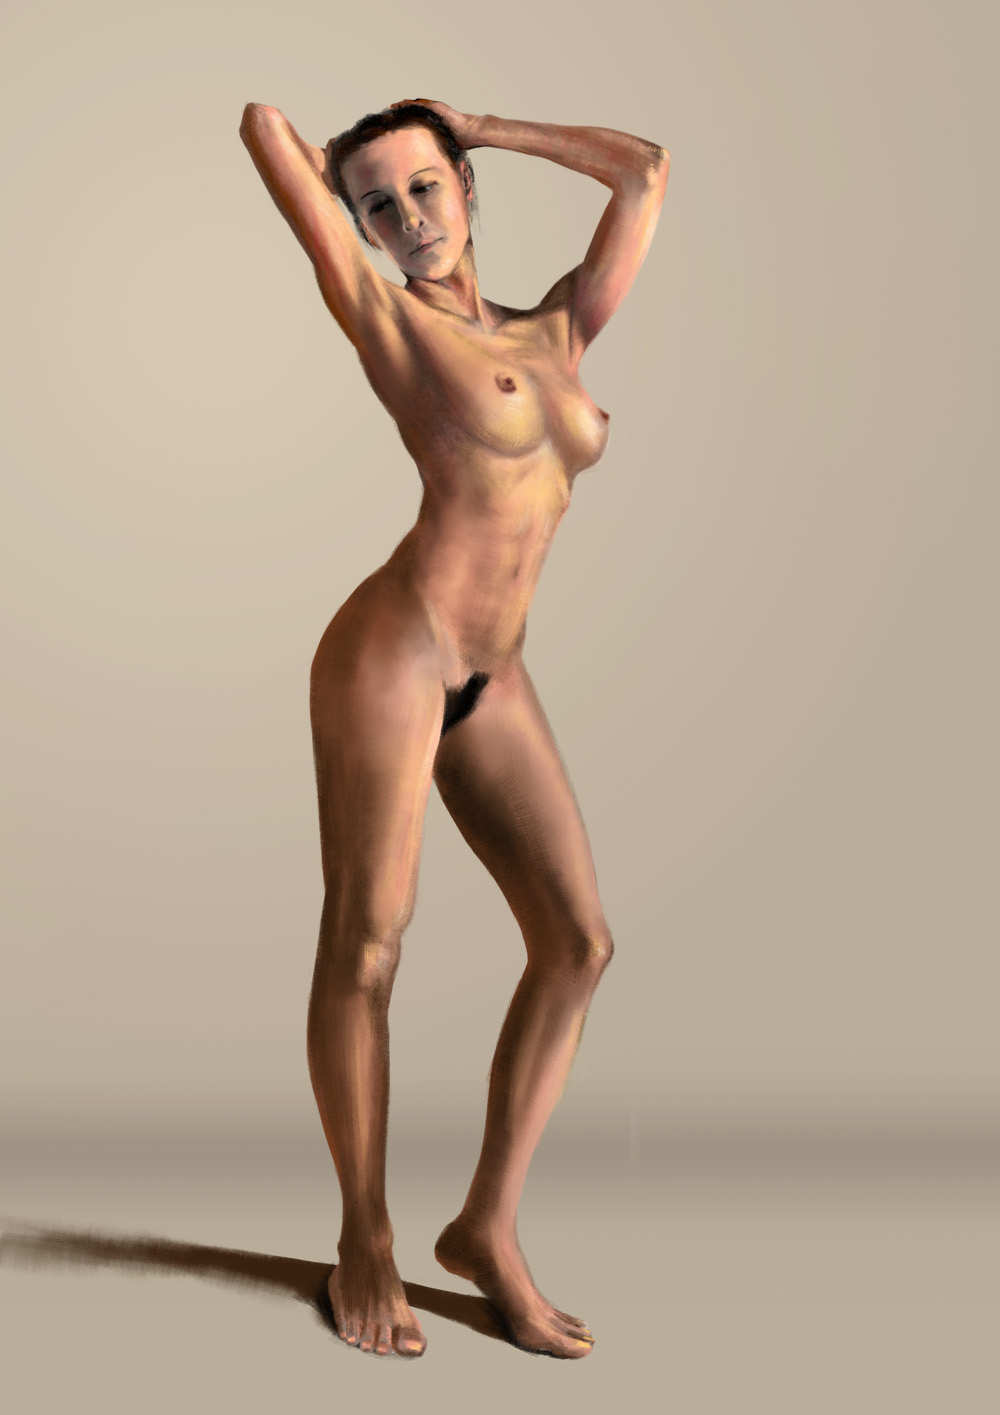 [PhotoshopCS4]Female nude study & WIP. Posted by ACGM at 10:42 PM